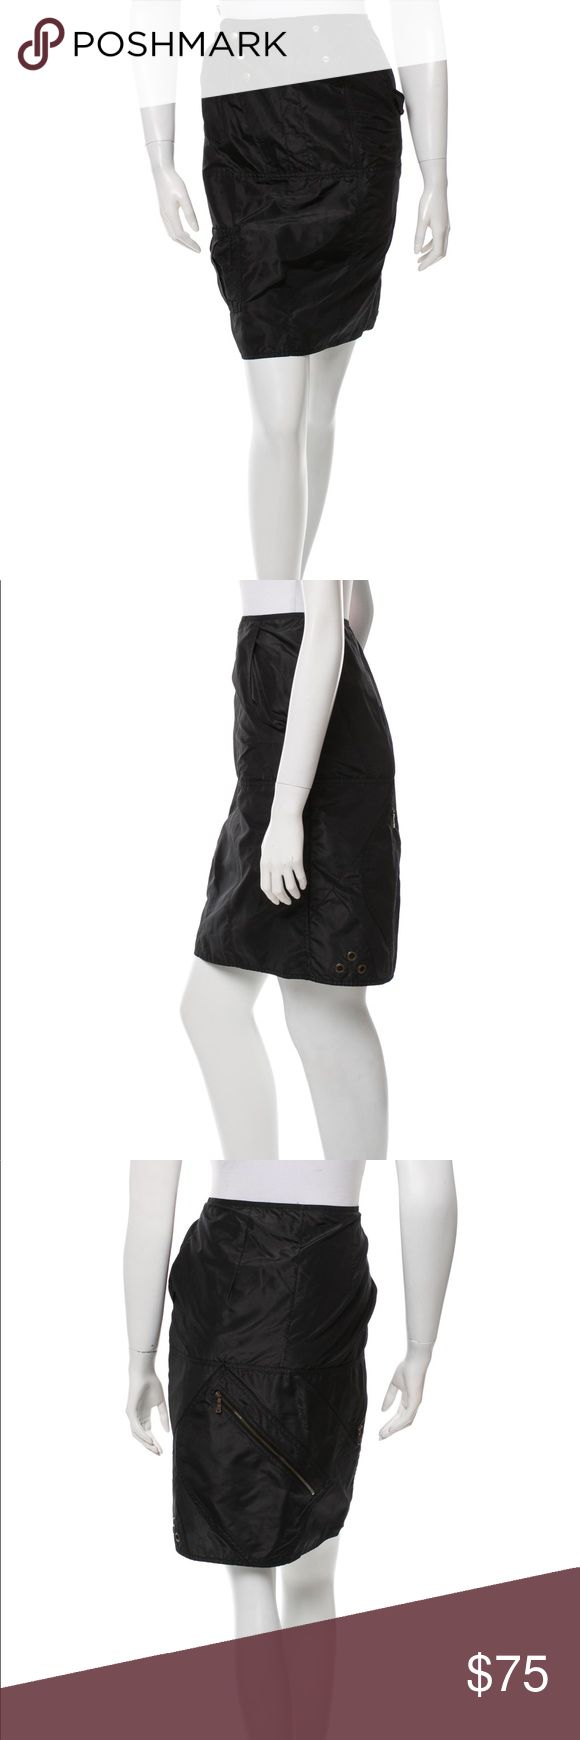 """SALE - YVES SAINT LAURENT KNEE-LENGTH SKIRT Black Yves Saint Laurent silk skirt with tonal stitching, slit pockets at sides and brass snap button closures at front. Waist: 28"""" Hip: 36"""" Length: 22"""" Condition: Very Good. Light wear at fabric. Fabric: 100% Silk Designer: Yves Saint Laurent   (((photos are of actual piece))) Yves Saint Laurent Skirts"""